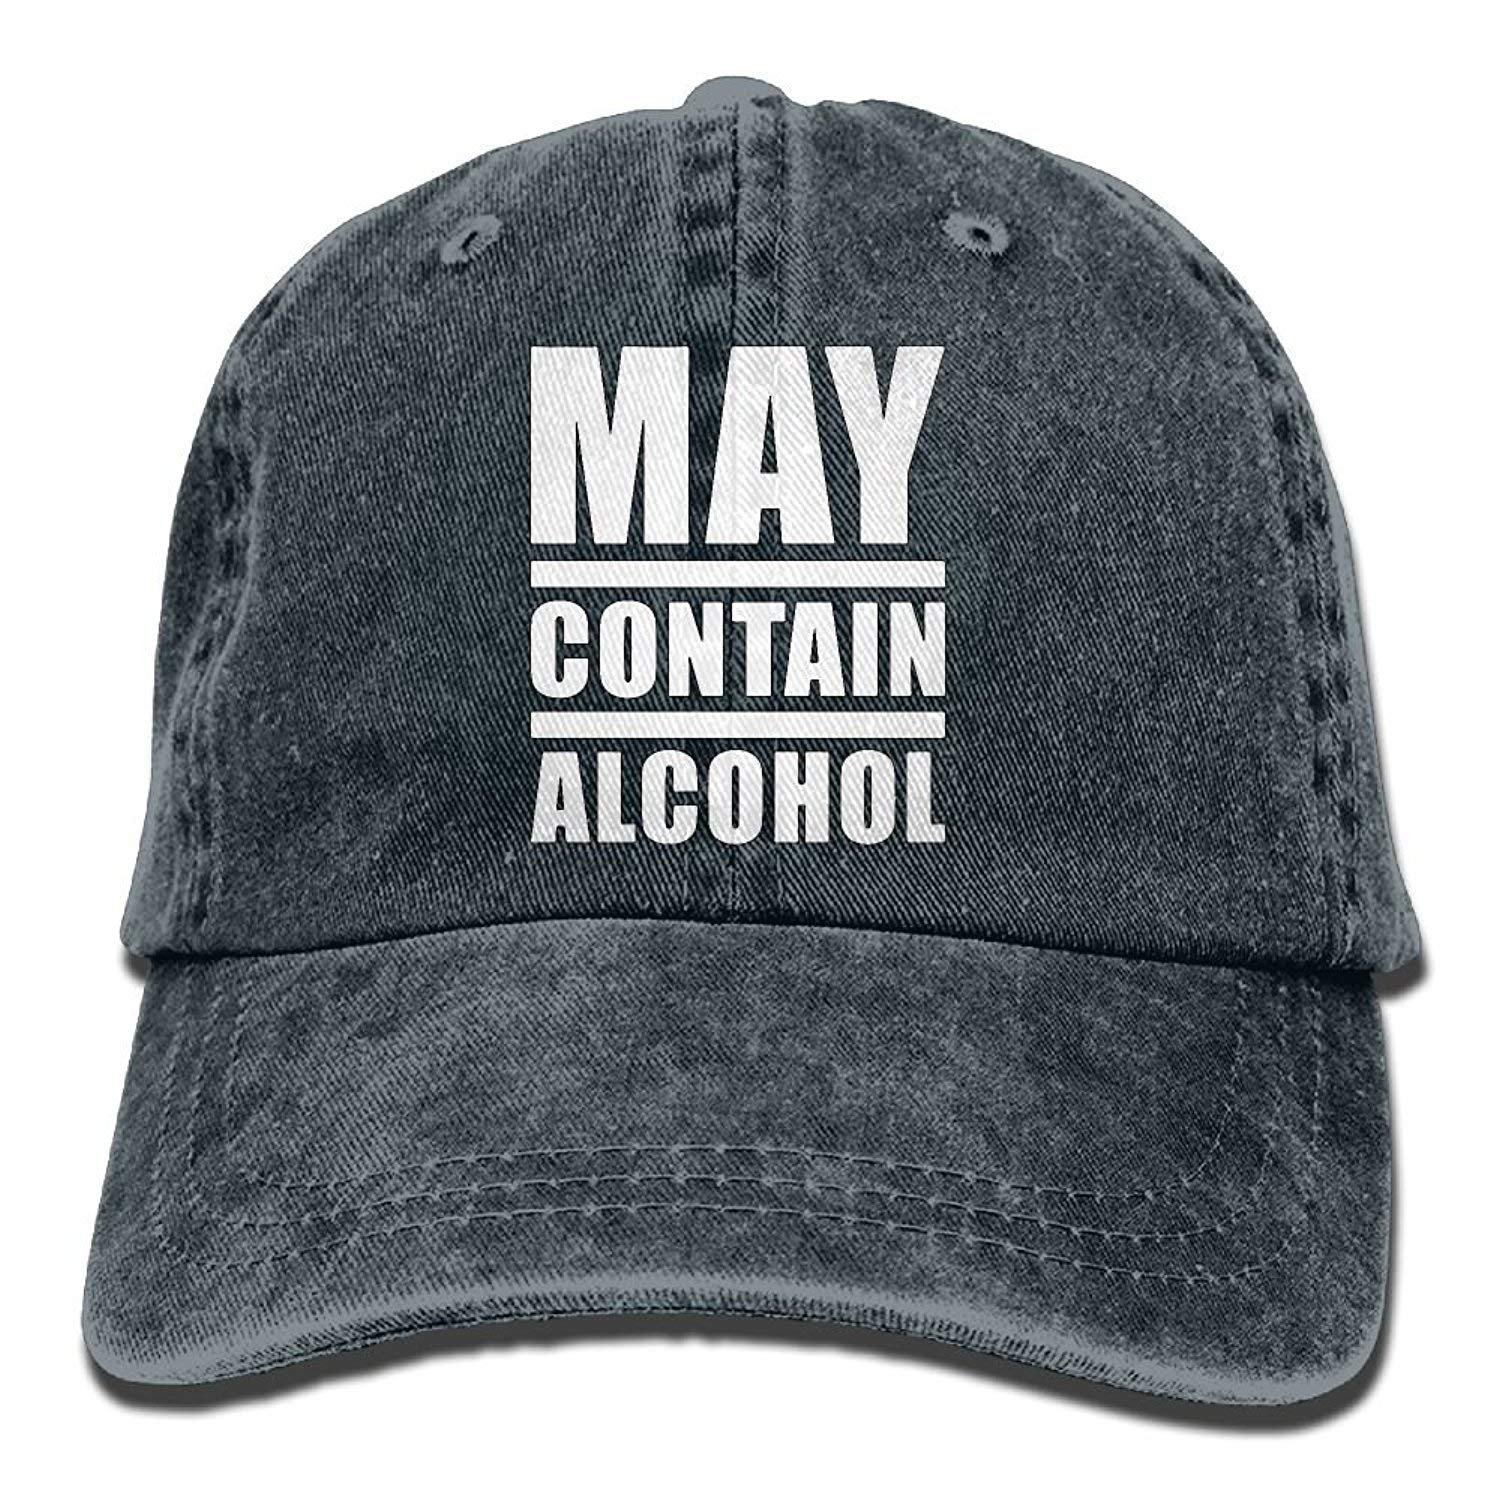 Unisex May Contain Alcohol Yarn-Dyed Denim Baseball Cap Adjustable Outdoor Sports Cap for Men Women JTRVW Cowboy Hats